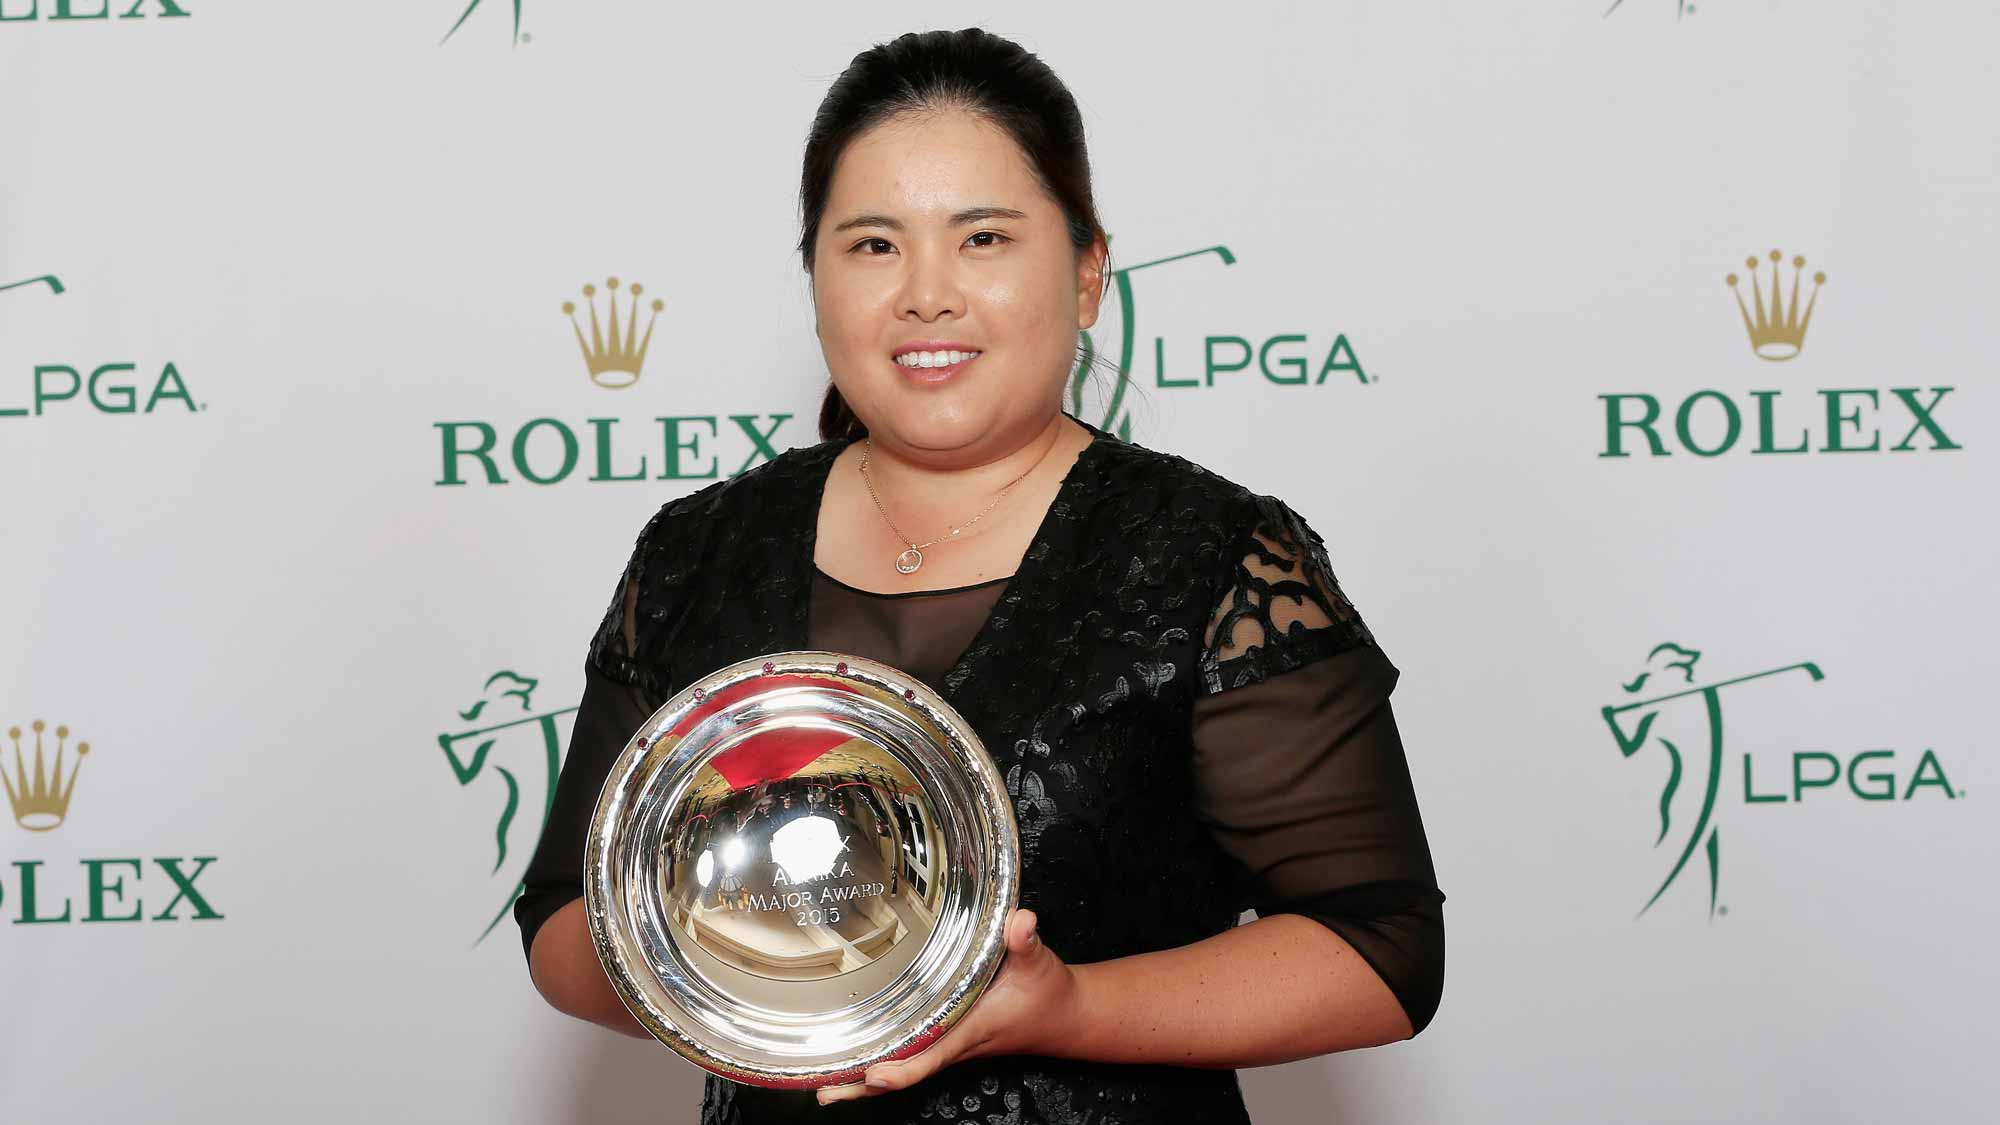 Inbee Park of South Korea poses with the Rolex Annika Major Award during the LPGA Rolex Players Awards at the Ritz-Carlton, Naples